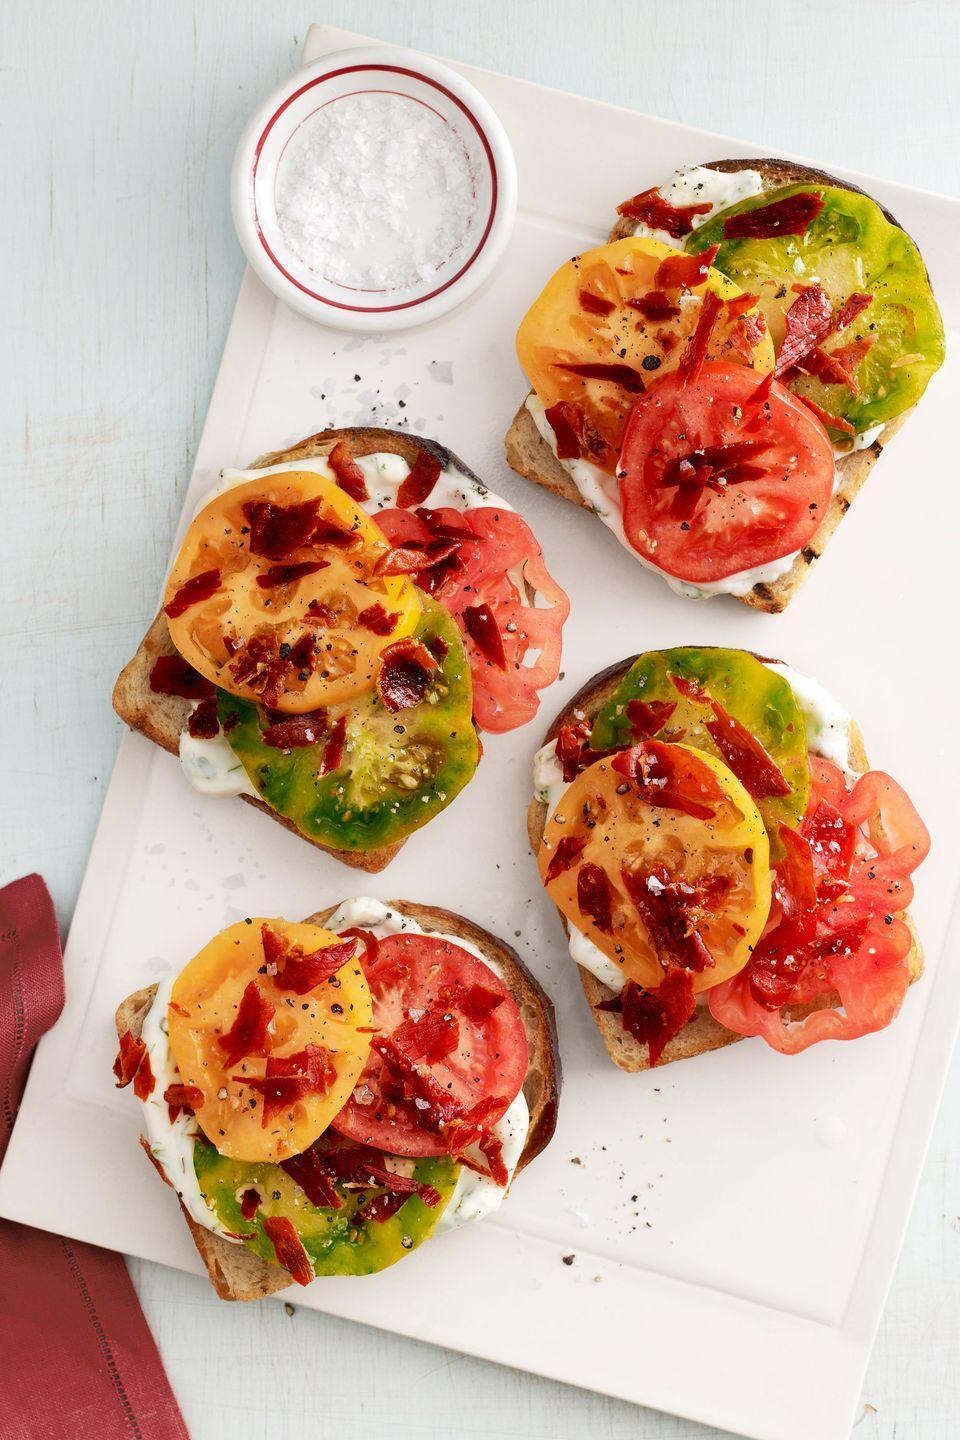 """<p>Though this sandwich is fresh and light, prosciutto keeps it satisfying and substantial enough to make it a filling summer lunch.</p><p><strong><a href=""""https://www.countryliving.com/food-drinks/recipes/a4218/heirloom-tomato-sandwiches-recipe-clv0913/"""" rel=""""nofollow noopener"""" target=""""_blank"""" data-ylk=""""slk:Get the recipe"""" class=""""link rapid-noclick-resp"""">Get the recipe</a>.</strong></p>"""